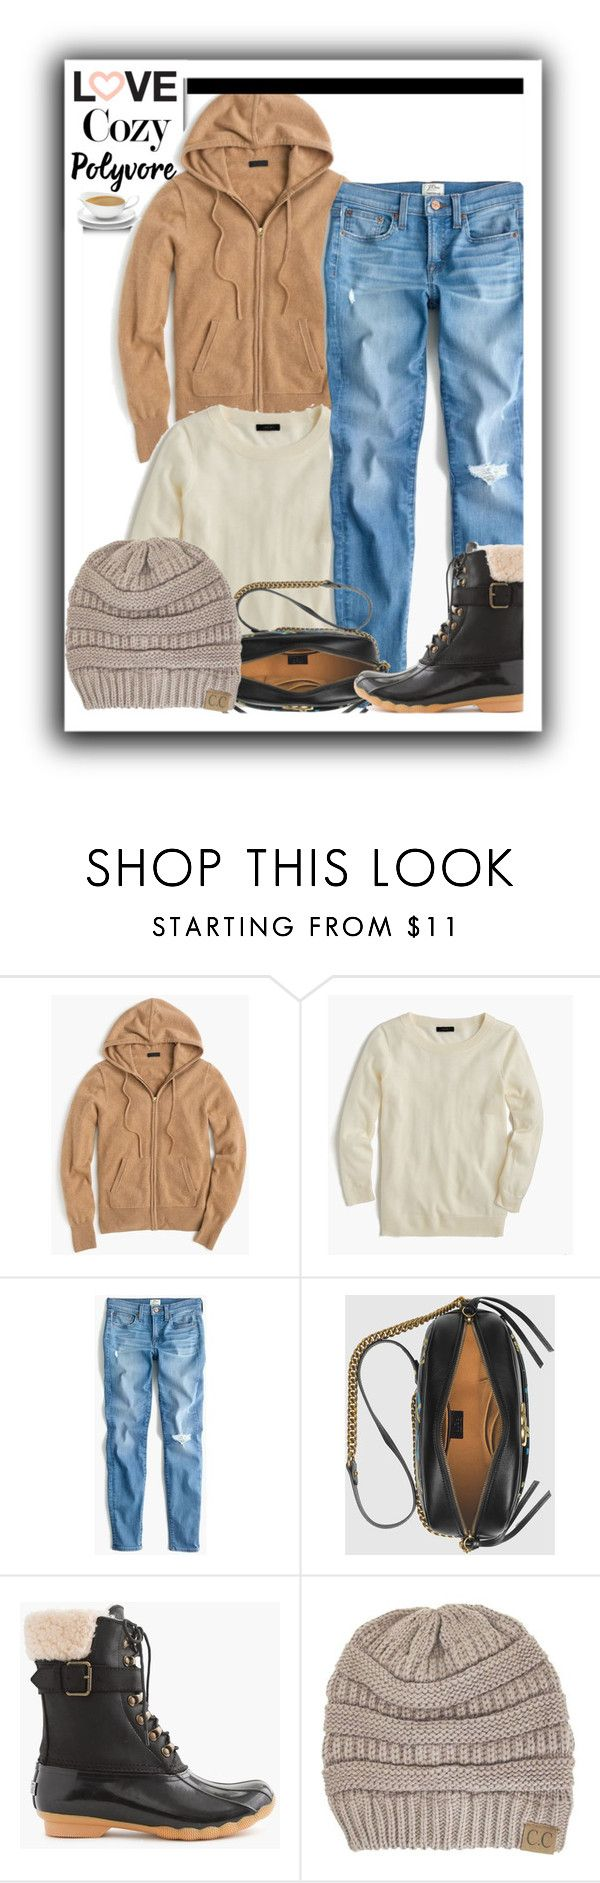 """""""Love Cozy Ladies"""" by heavenlyangel161 ❤ liked on Polyvore featuring J.Crew, Gucci and Sperry"""